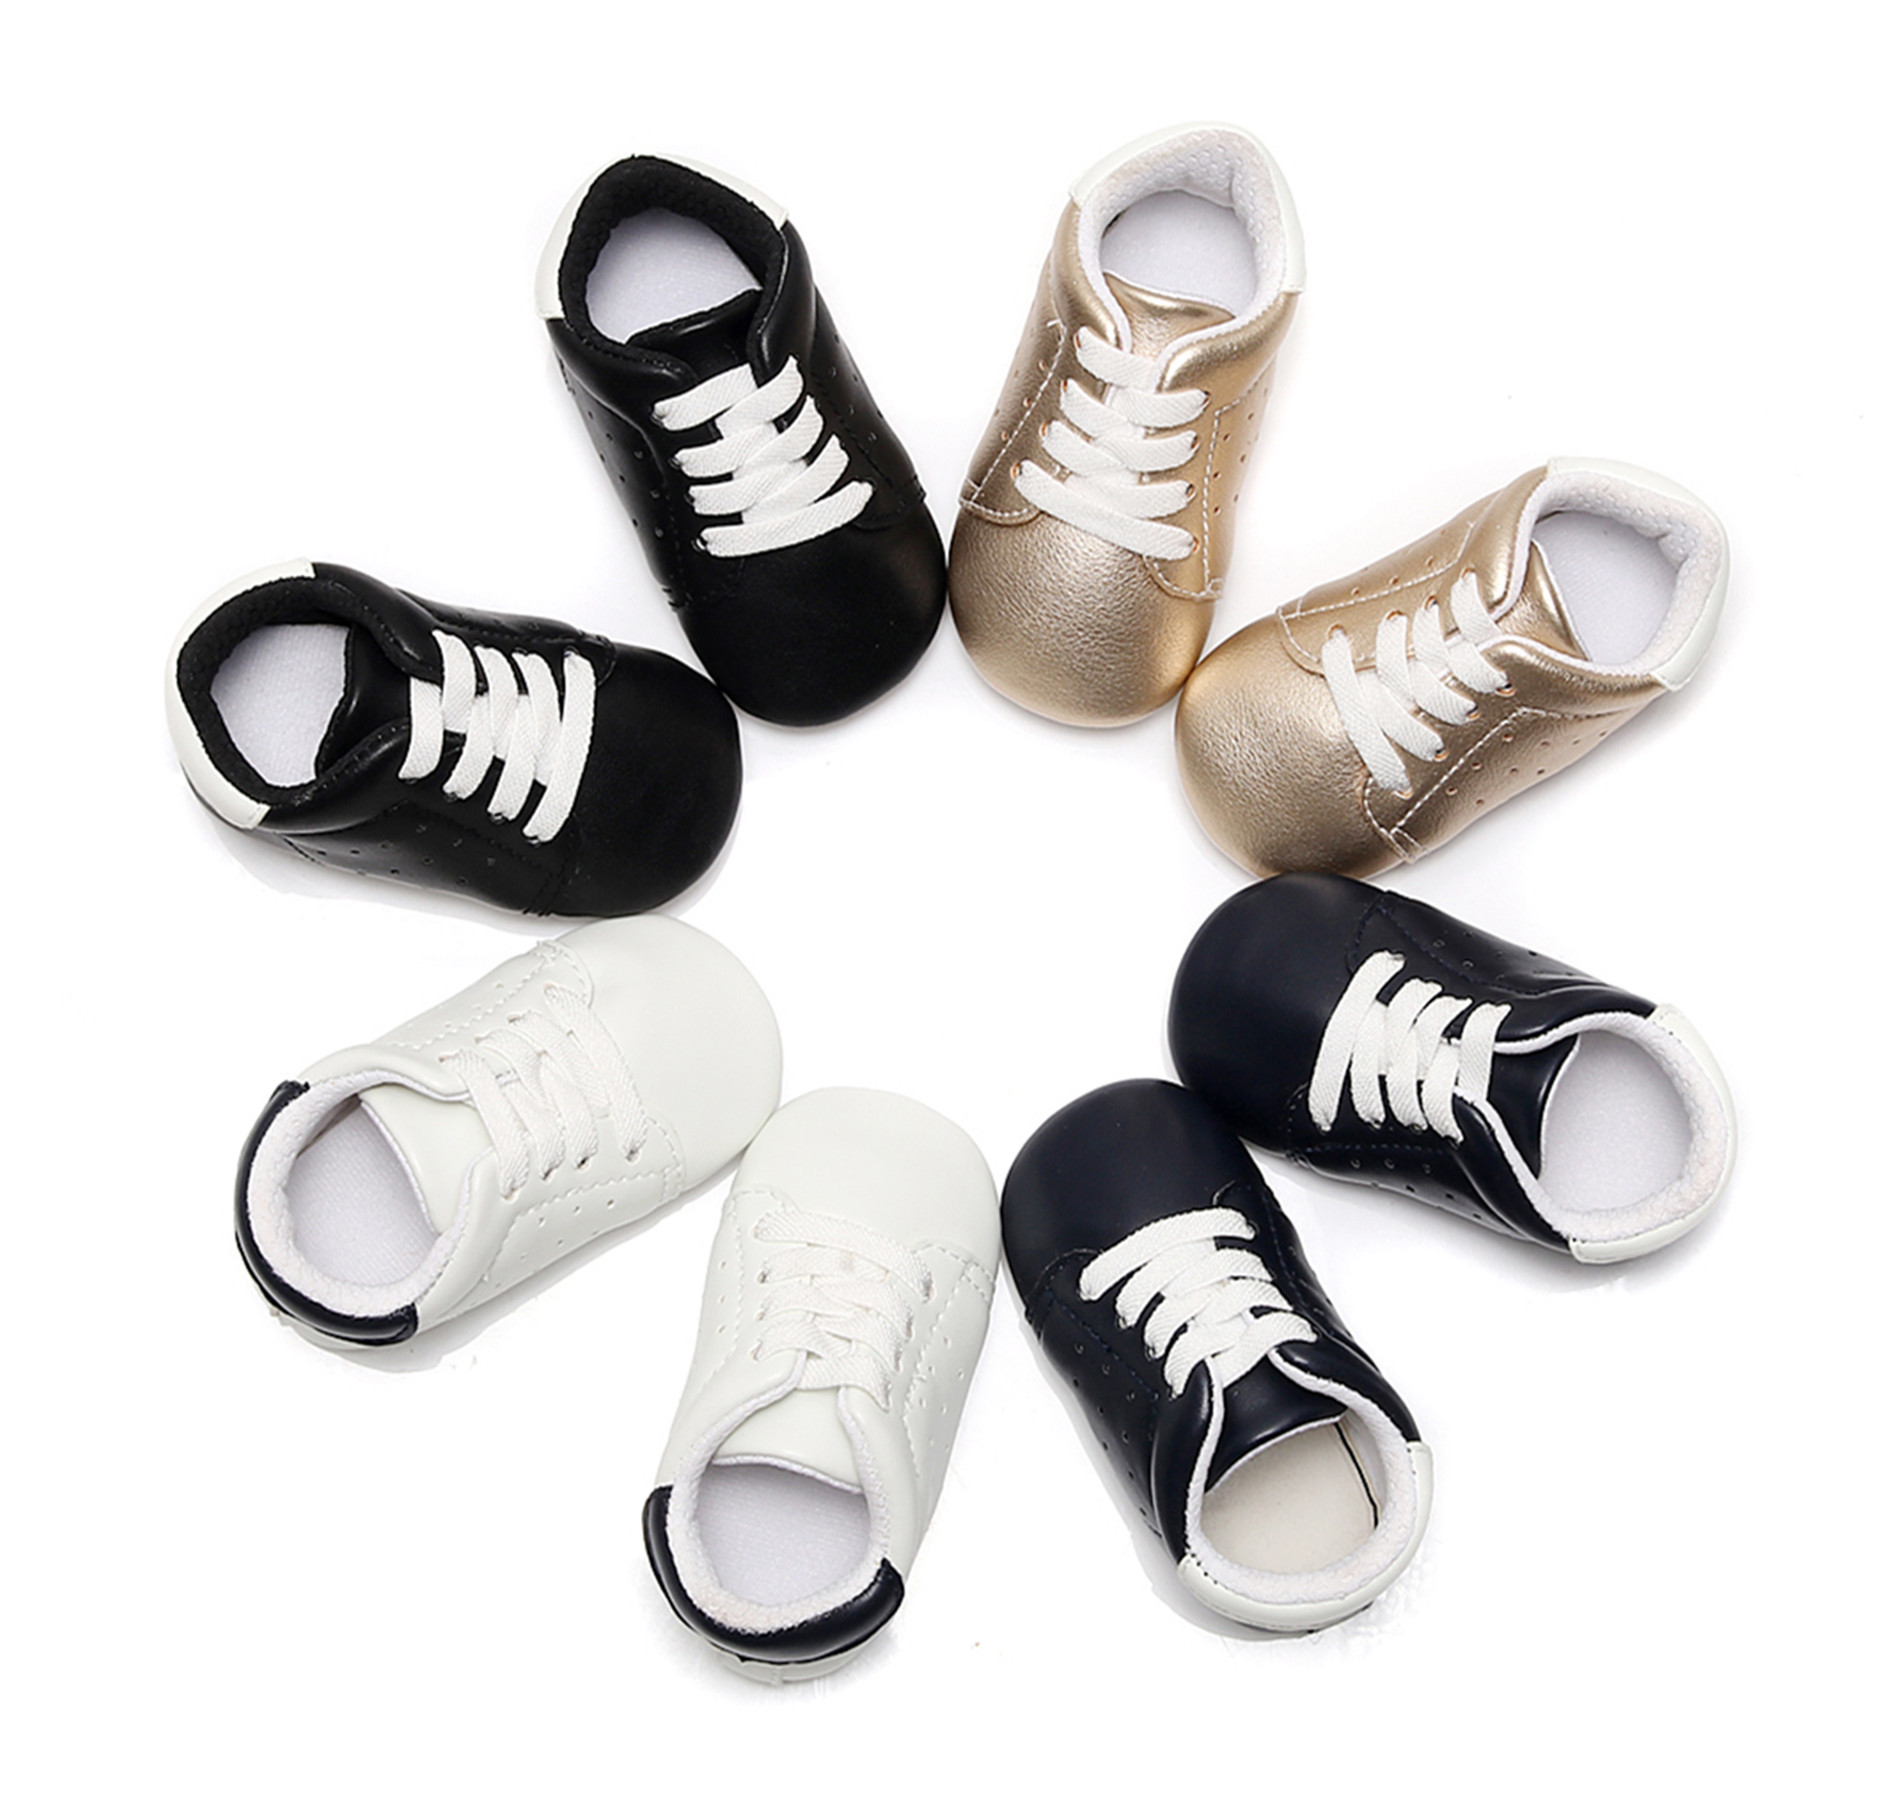 2018 New Pu Leather Baby Moccasins Cute Boys Girls Fashion Sneakers Casual Shoes for Infant and Toddler First Walkers